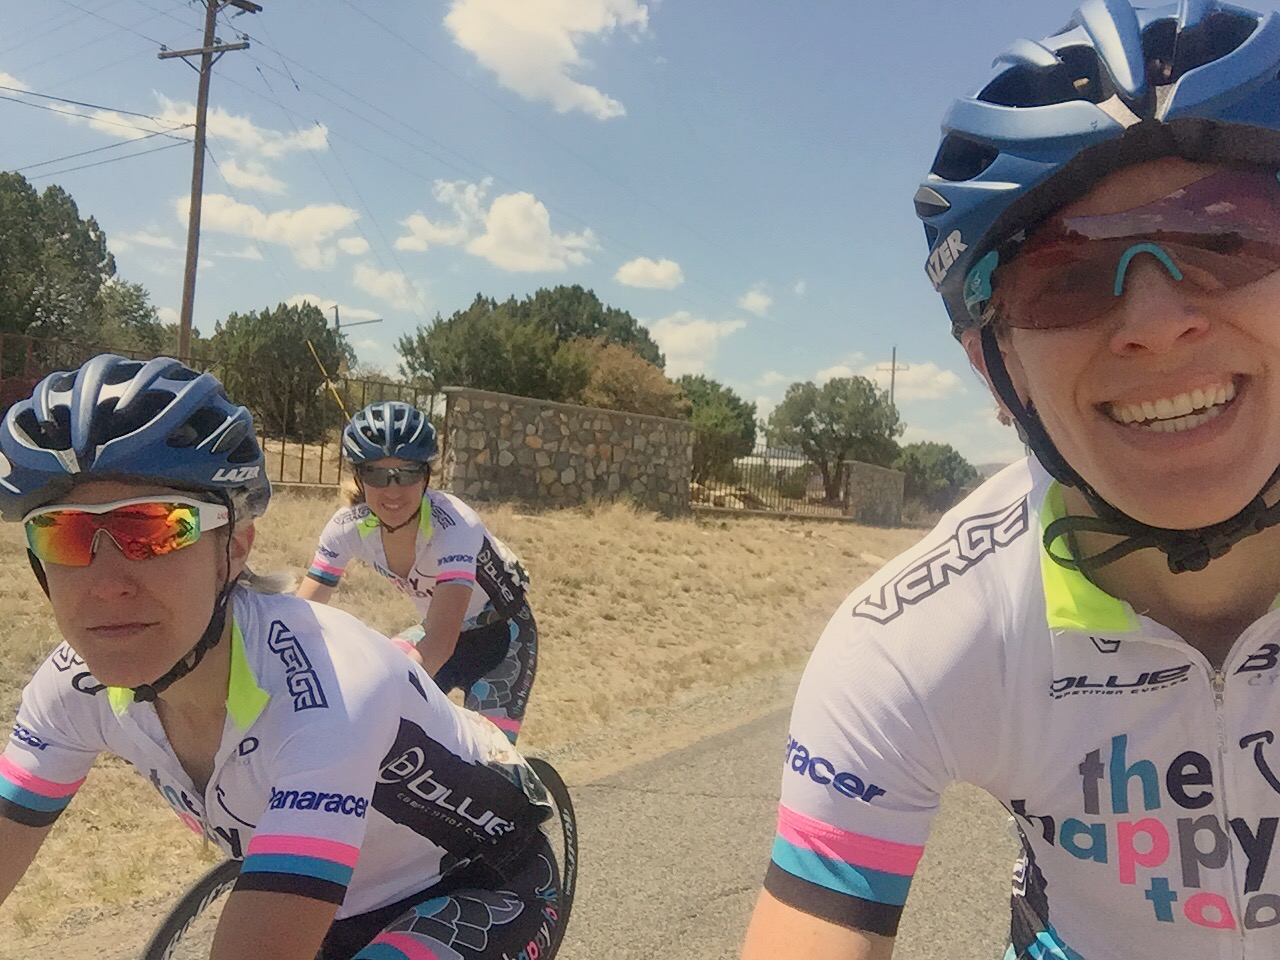 Amy Cameron, Dawn Andres, and Jen Luebke after stage 2